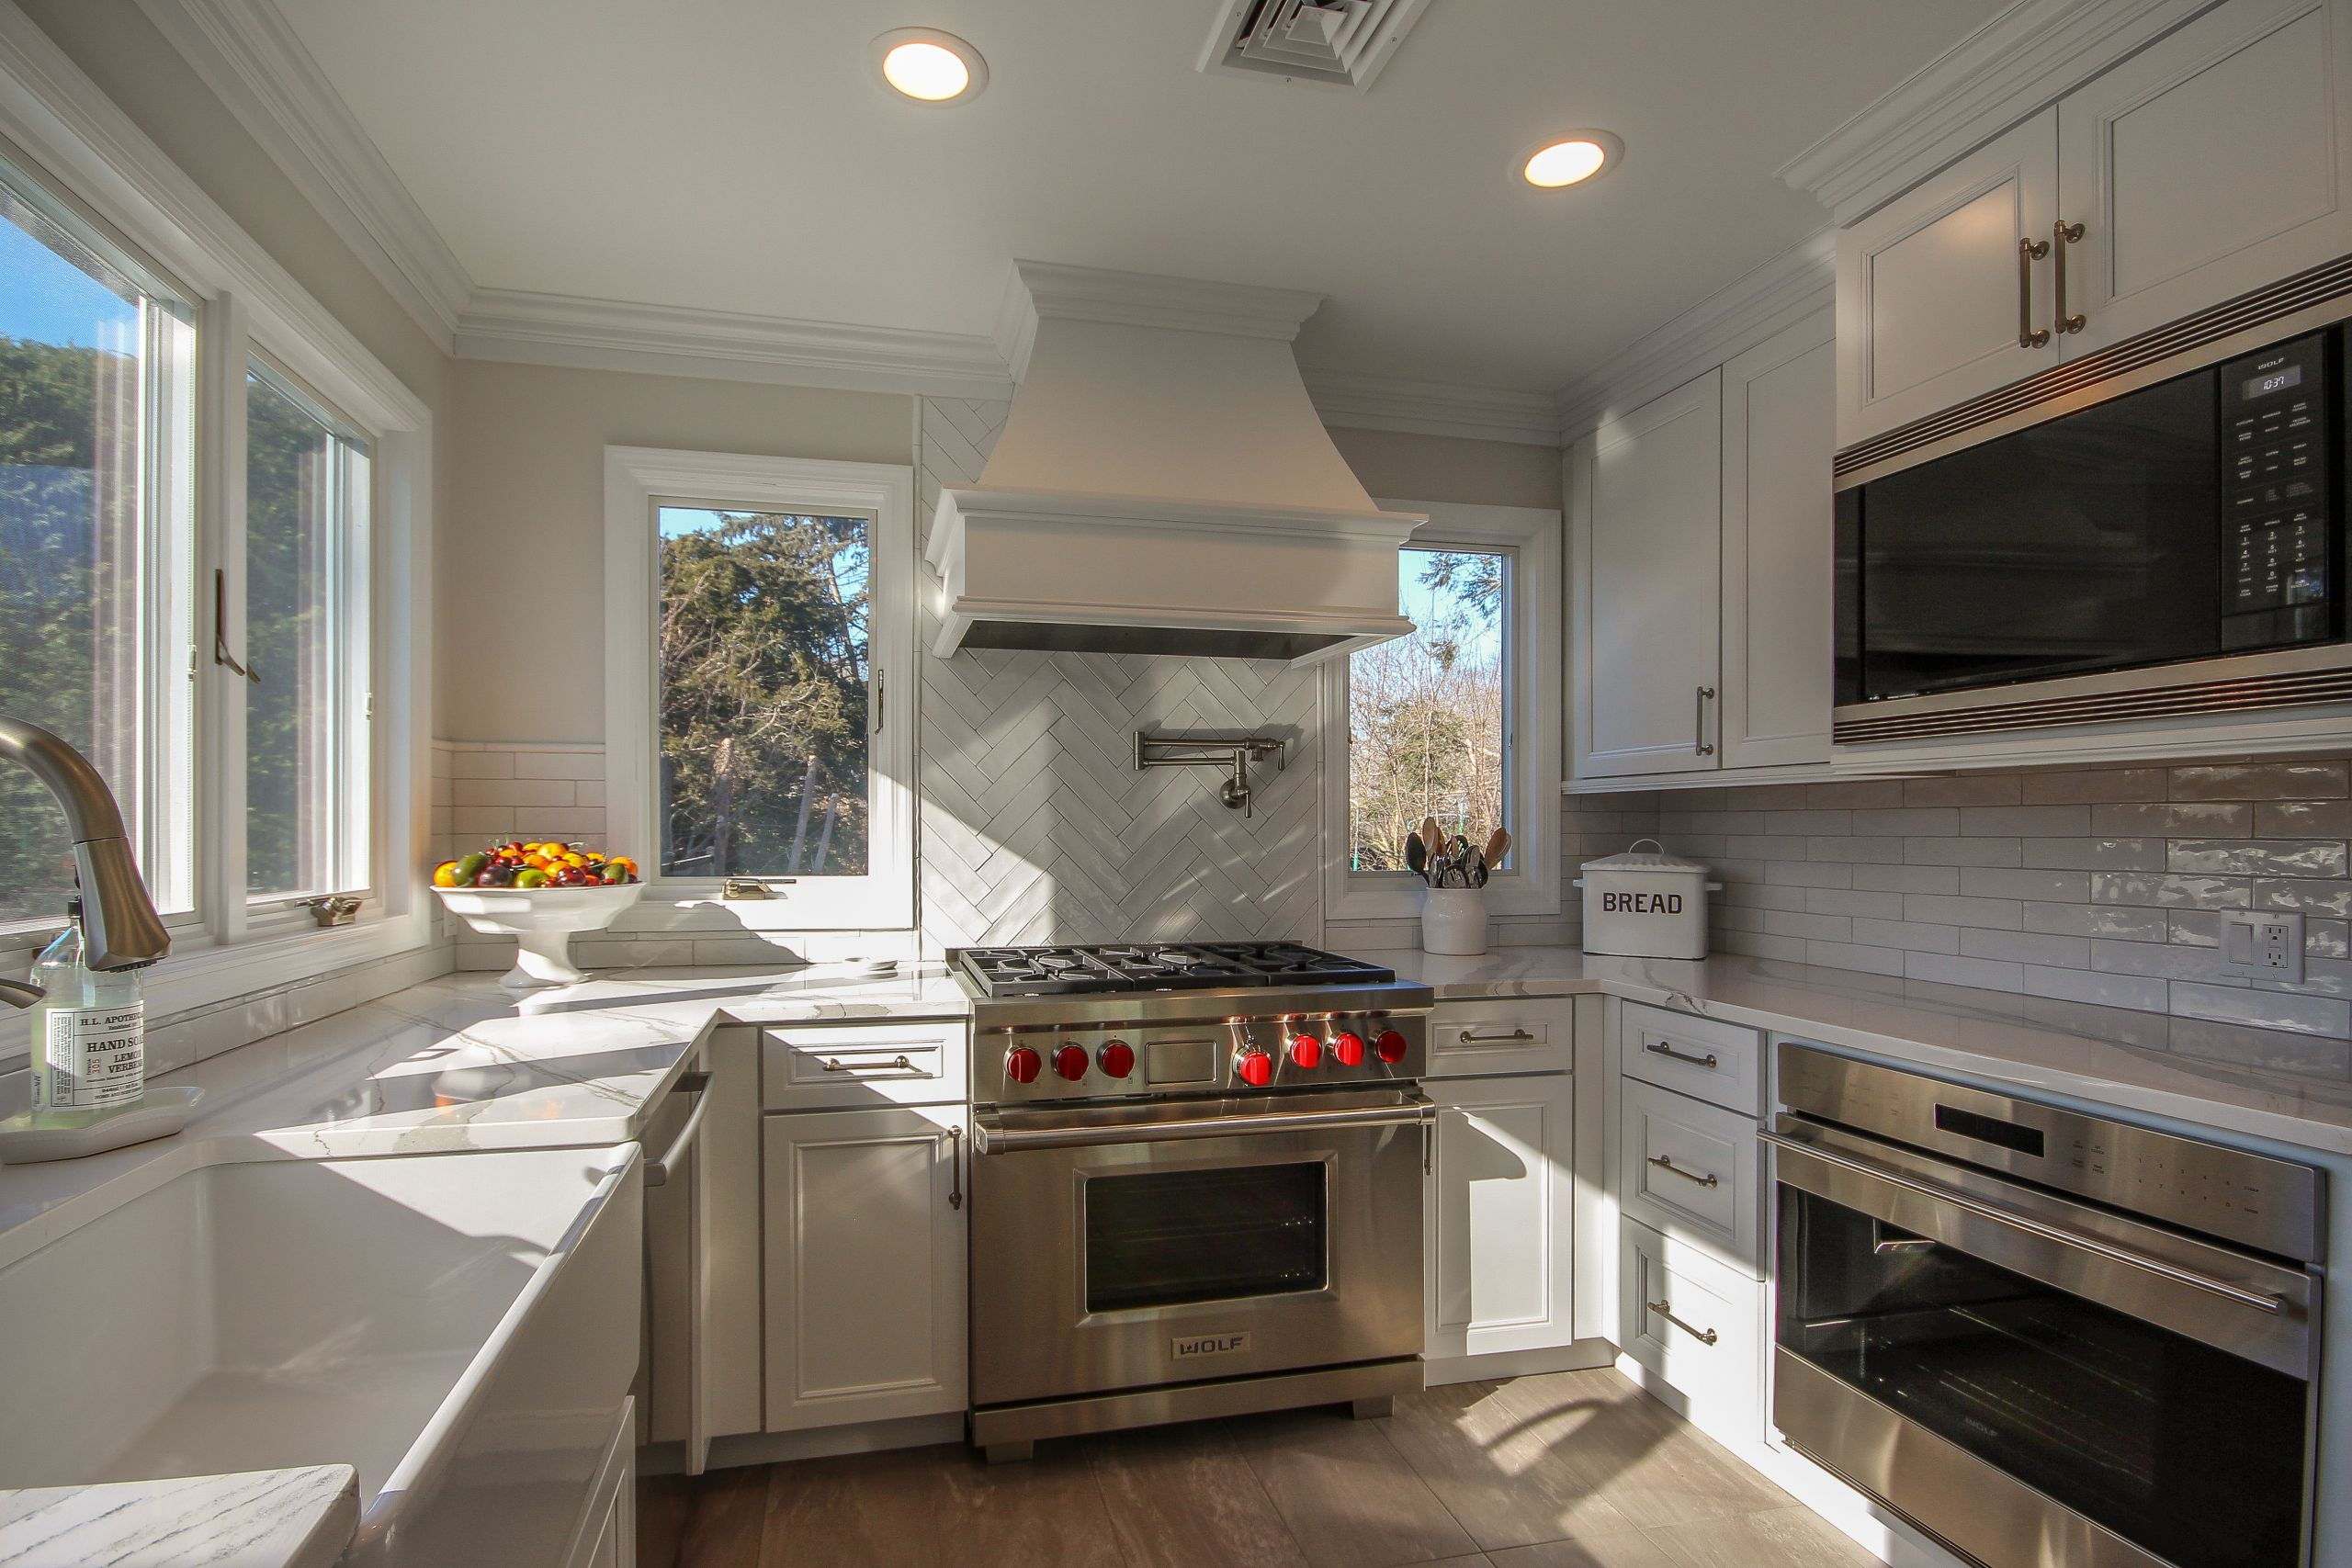 Kitchen Remodeling Ideas Pictures  Kitchen Remodeling Ideas & Trends for 2019